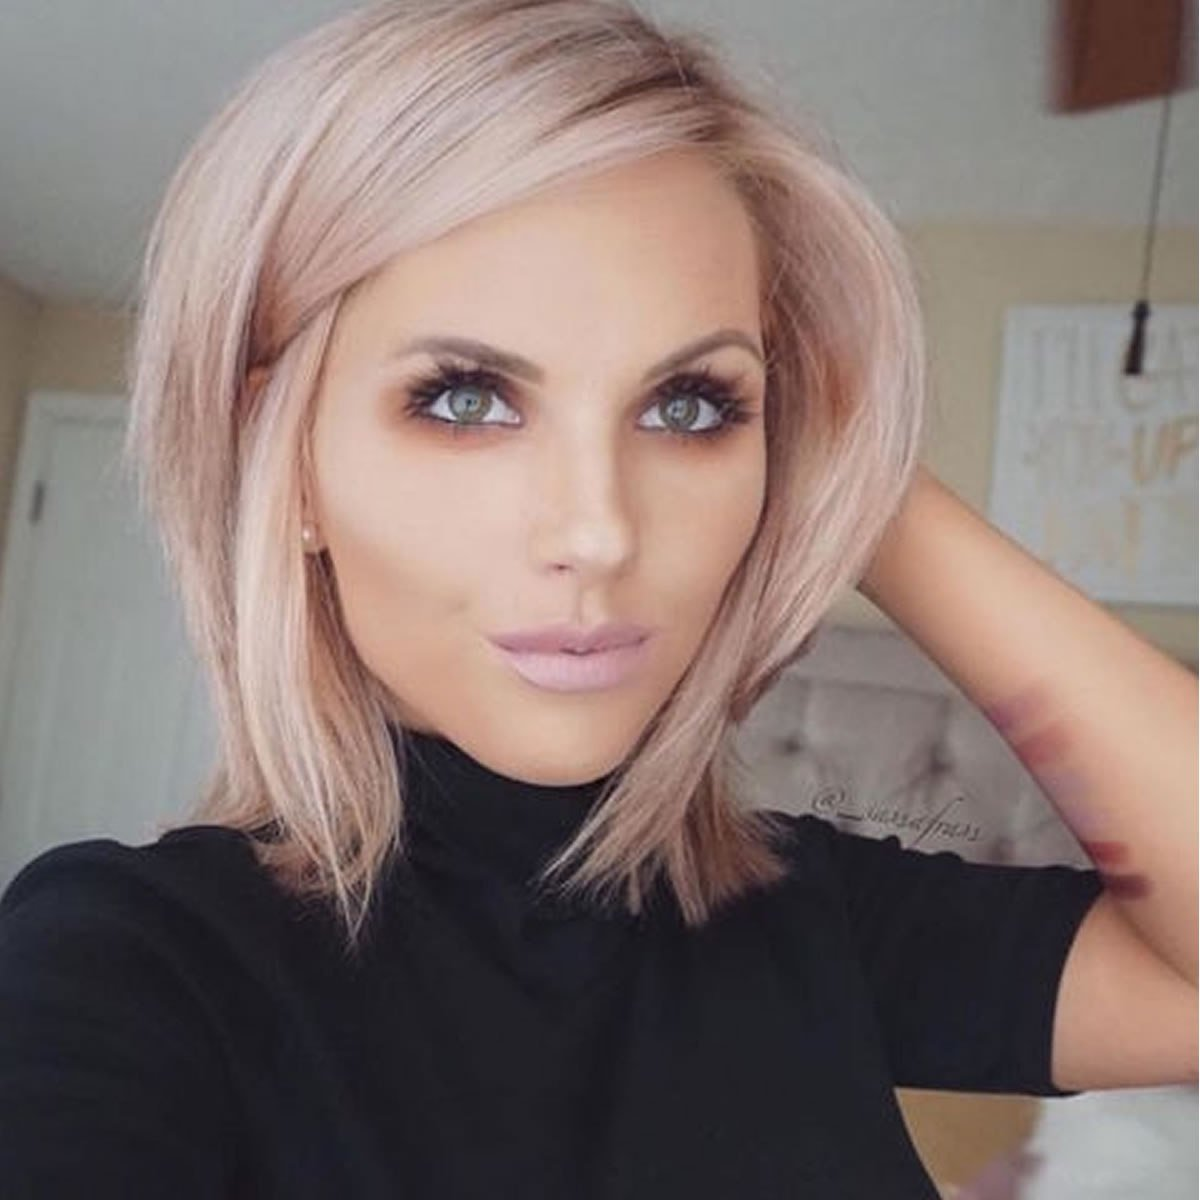 New The Best 30 Short Bob Haircuts – 2018 Short Hairstyles For Ideas With Pictures